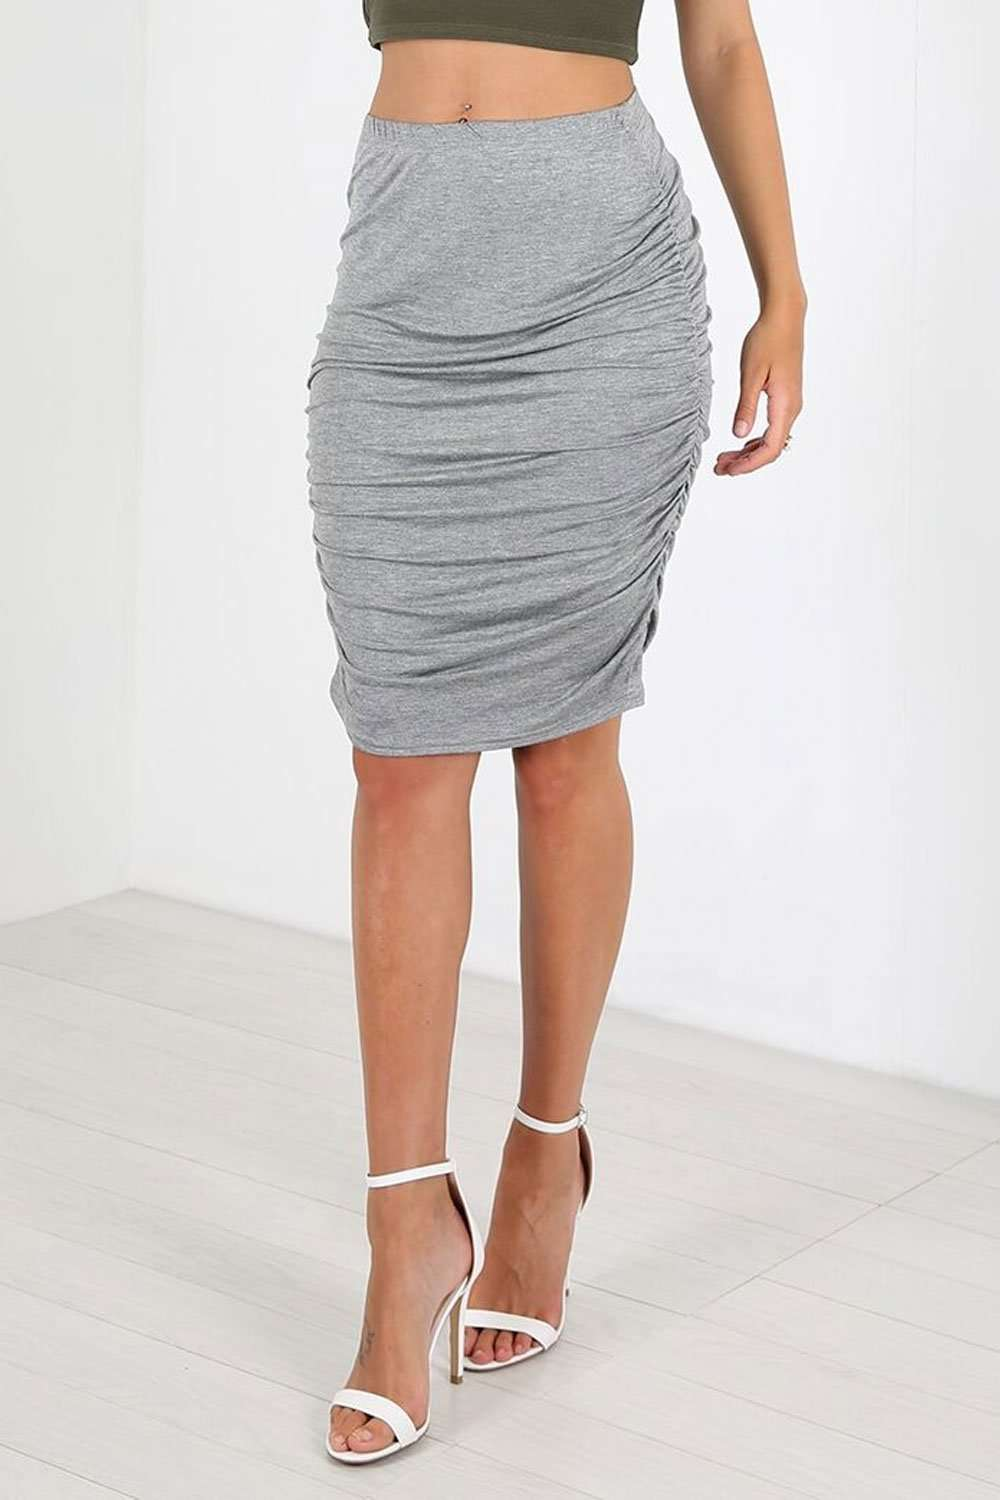 Elizabeth High Waist Ruched Midi Skirt - bejealous-com